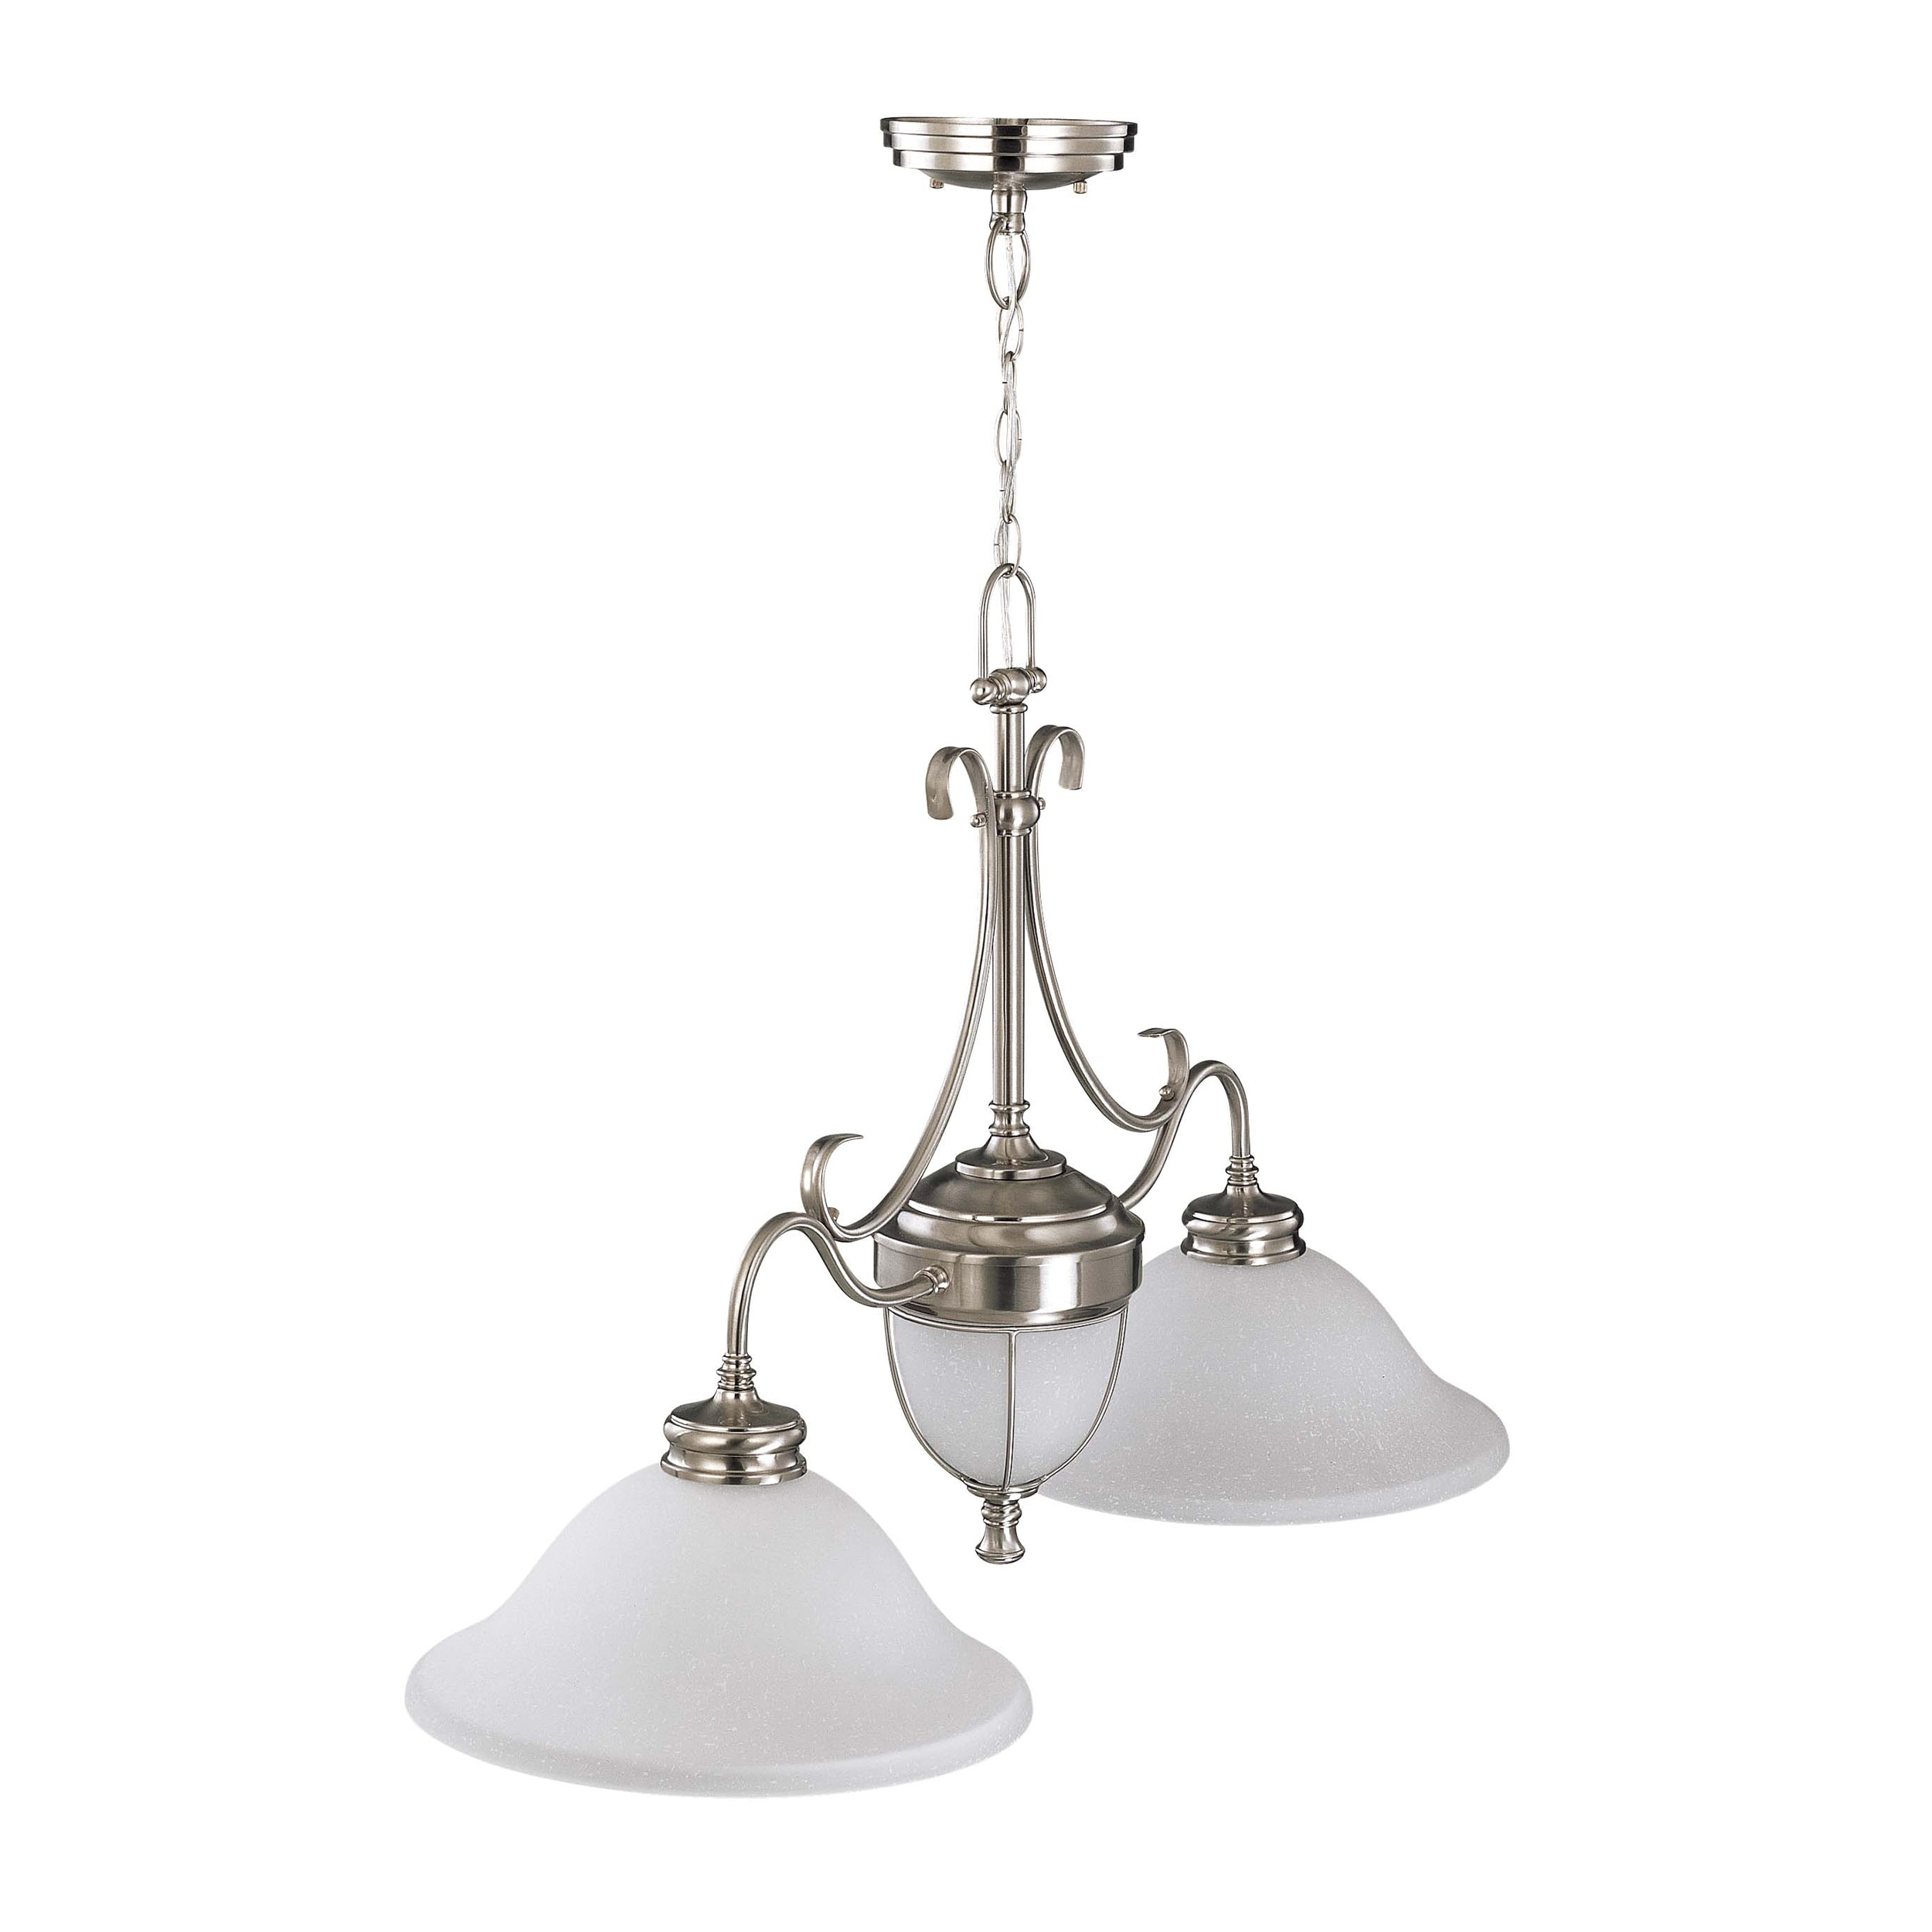 Salem 2 Light Brushed Nickel With Frosted Linen Glass Trestle